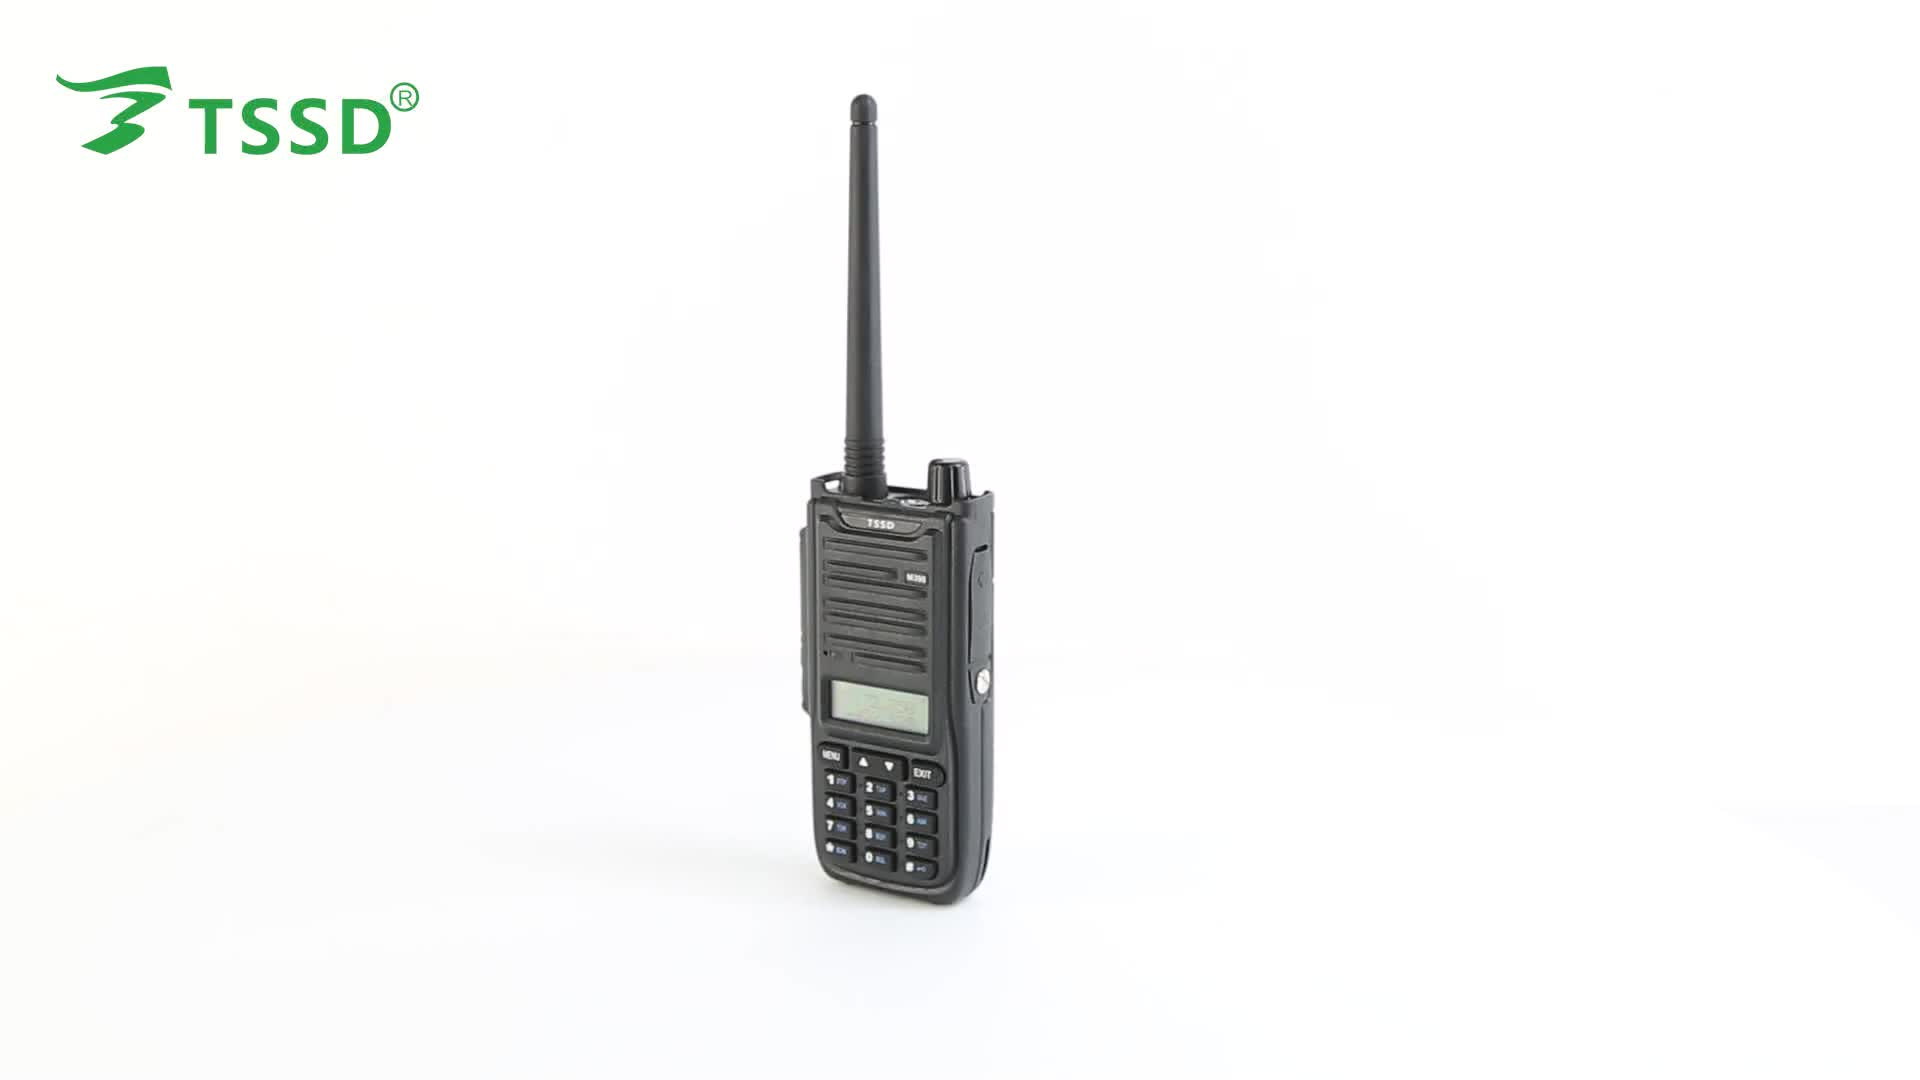 police handy walkie talkie for tssd ts-m398 dual band mobile transceiver